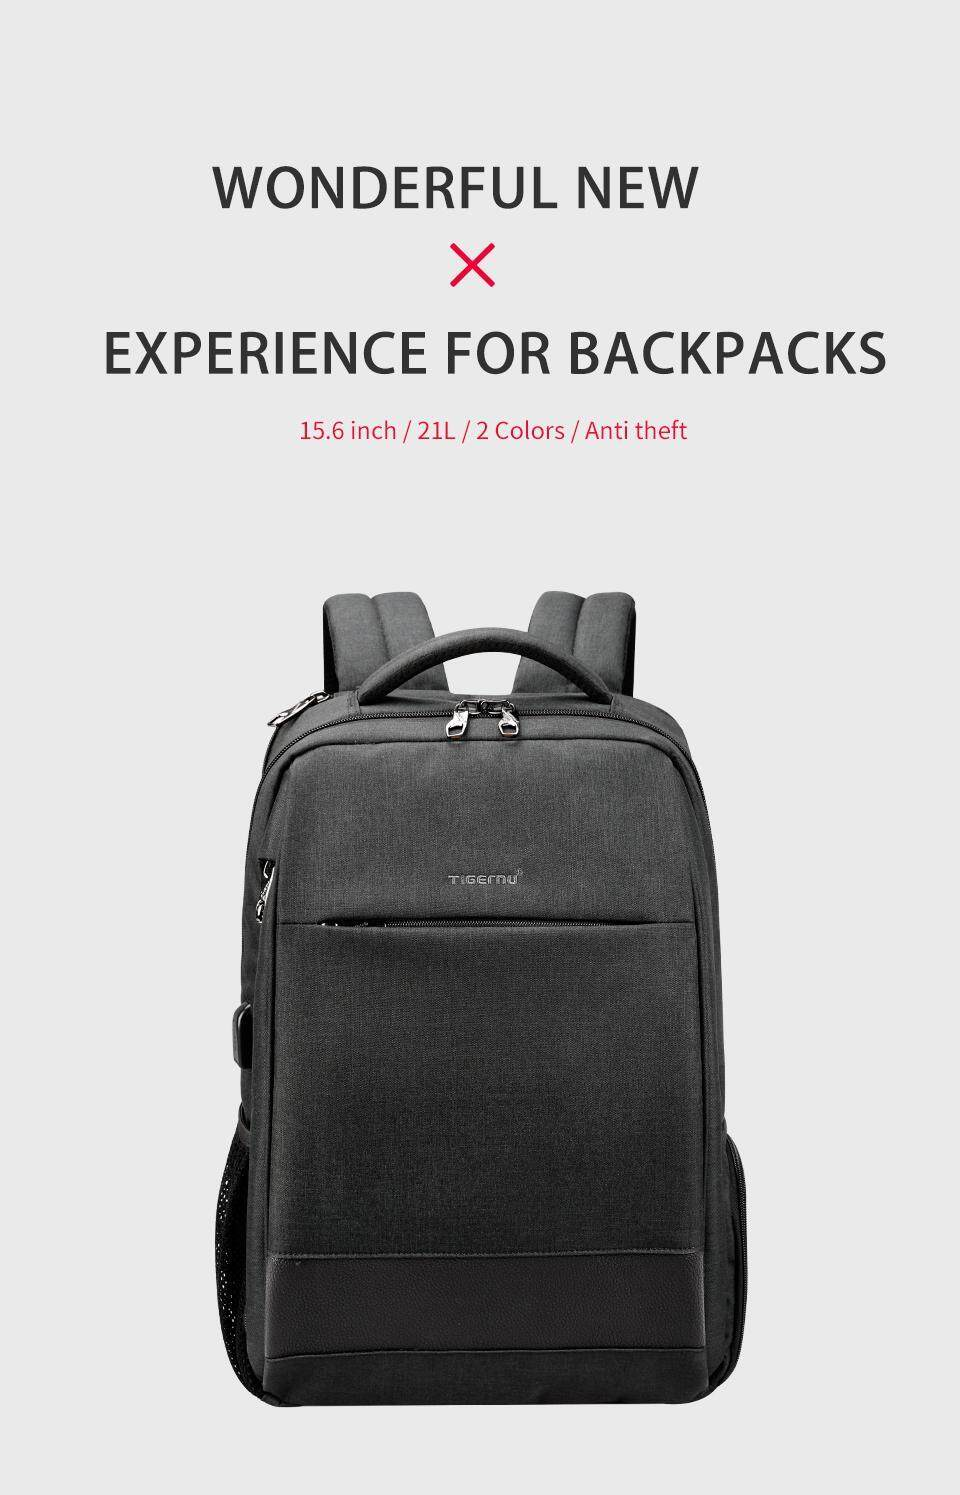 Travel Laptop Backpack,Business Anti Theft Durable Laptops Backpack Waterproof